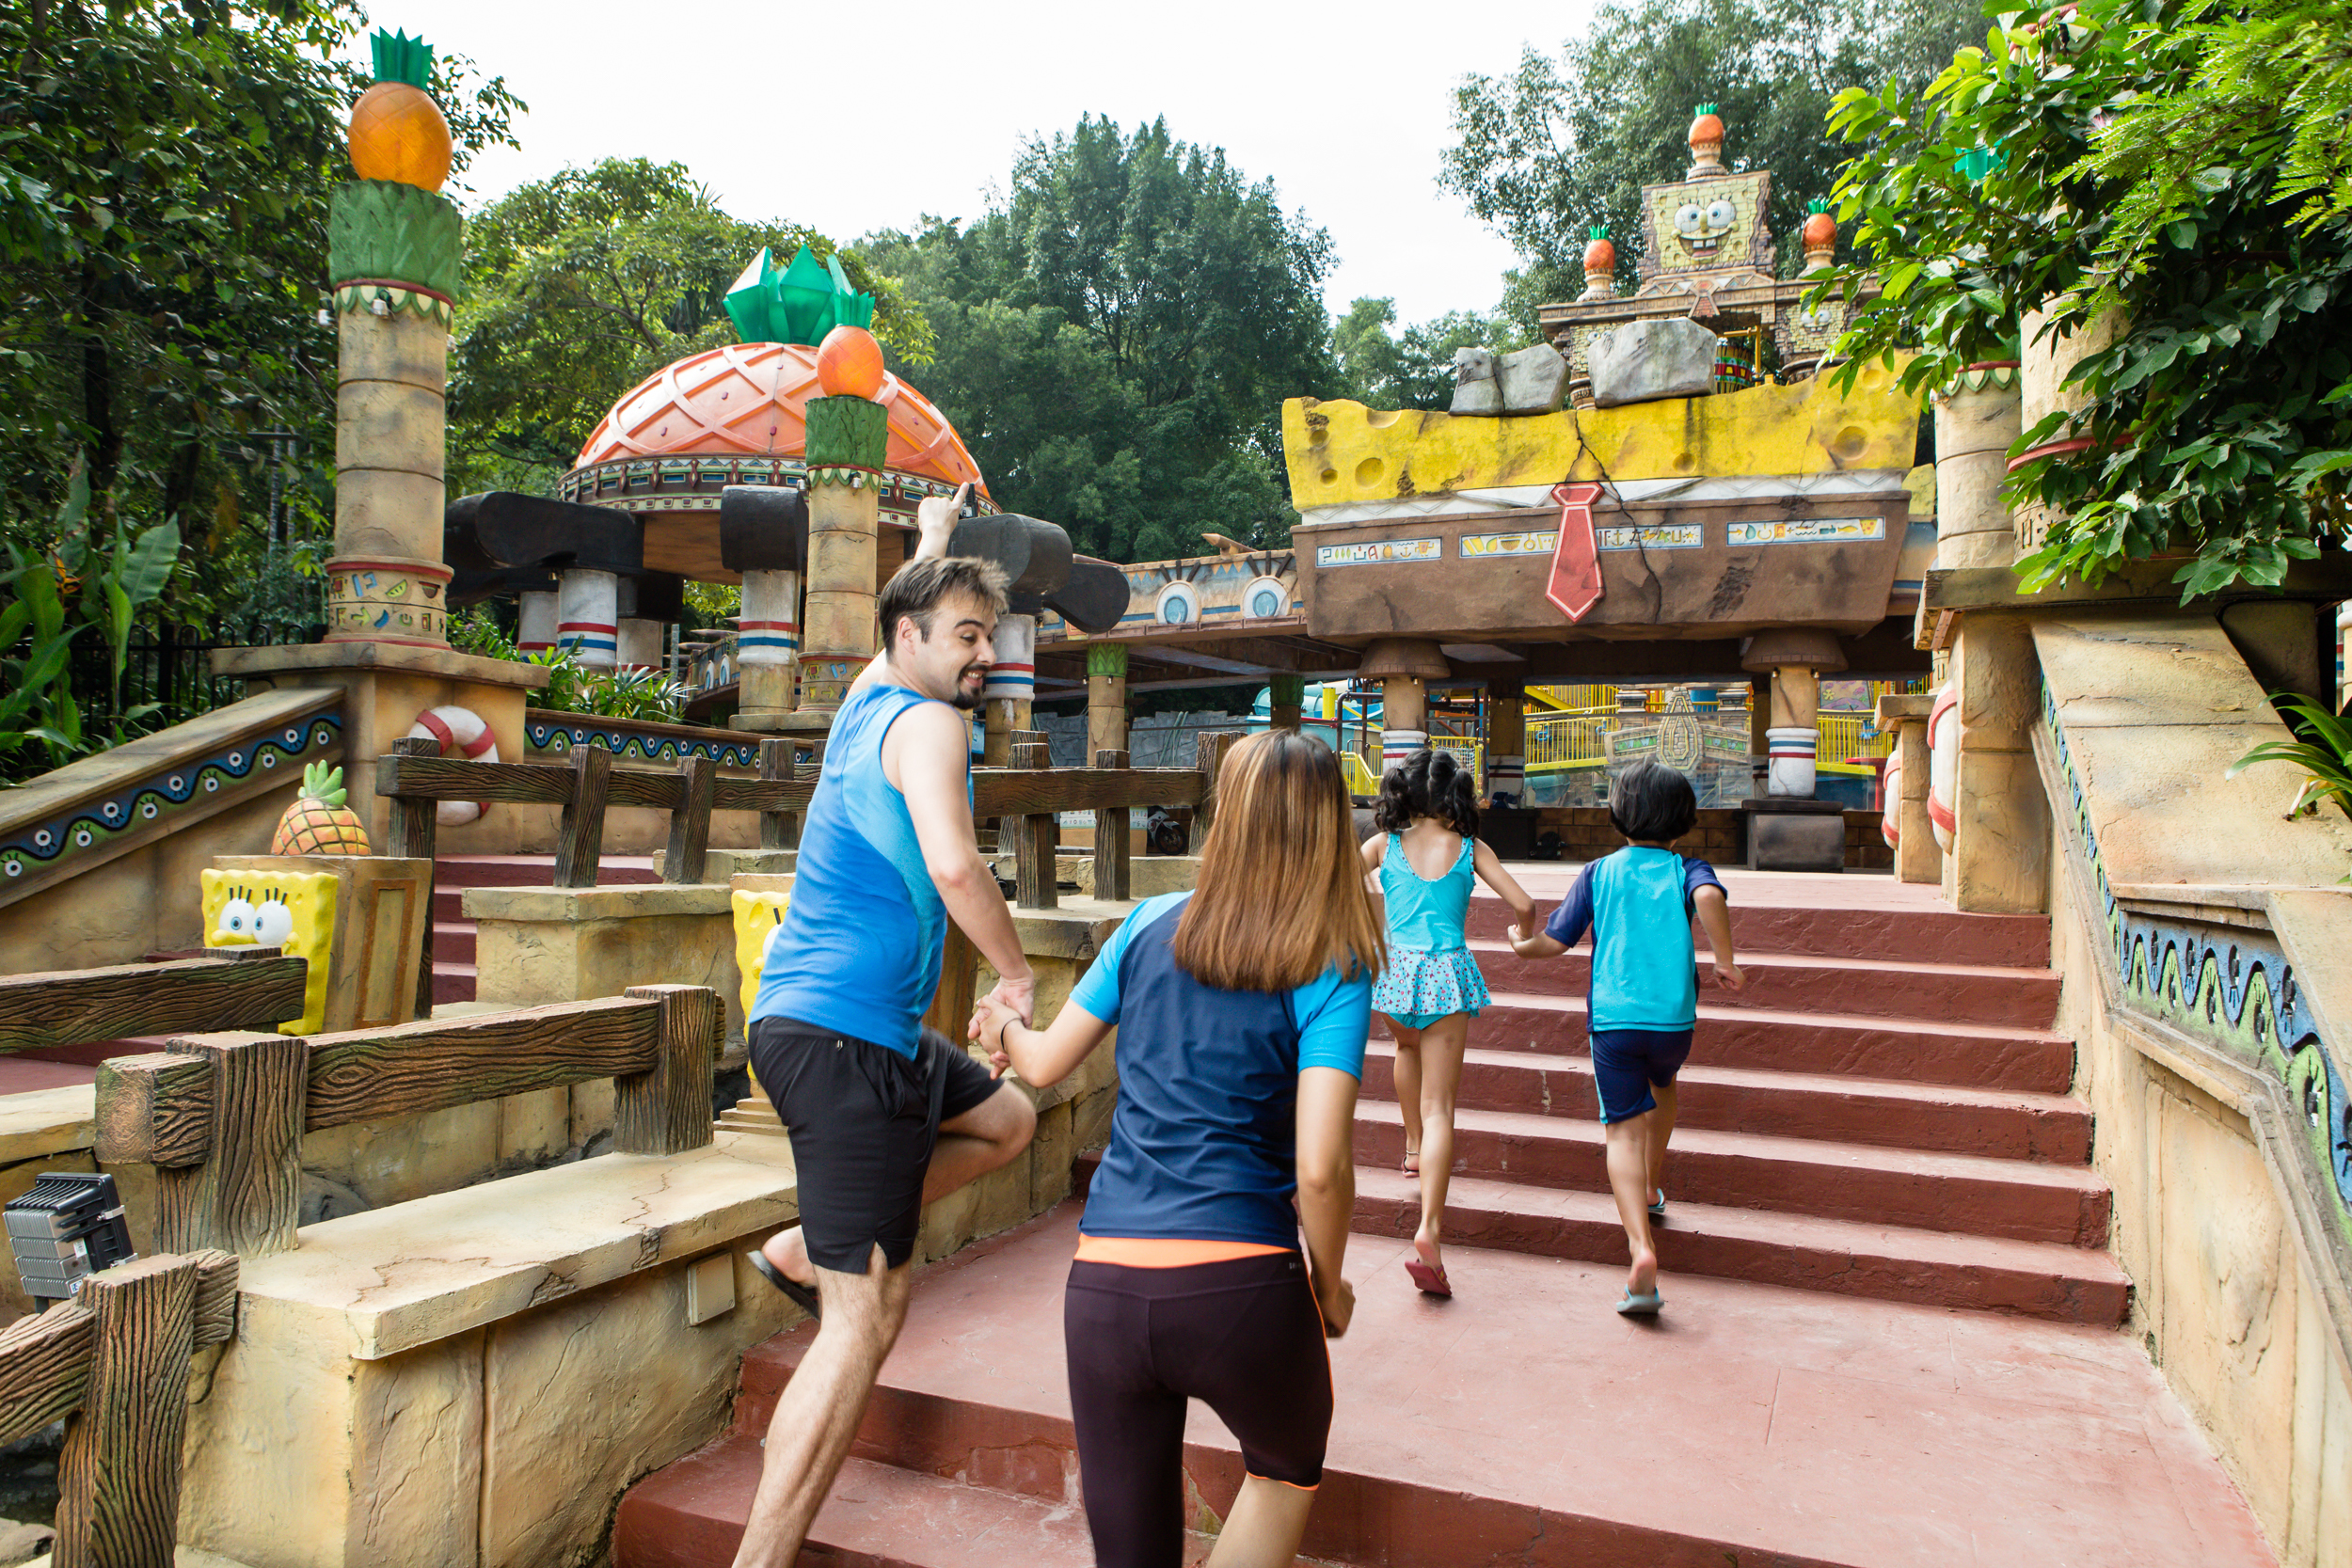 Go now: Nickelodeon Lost Lagoon at Sunway Lagoon